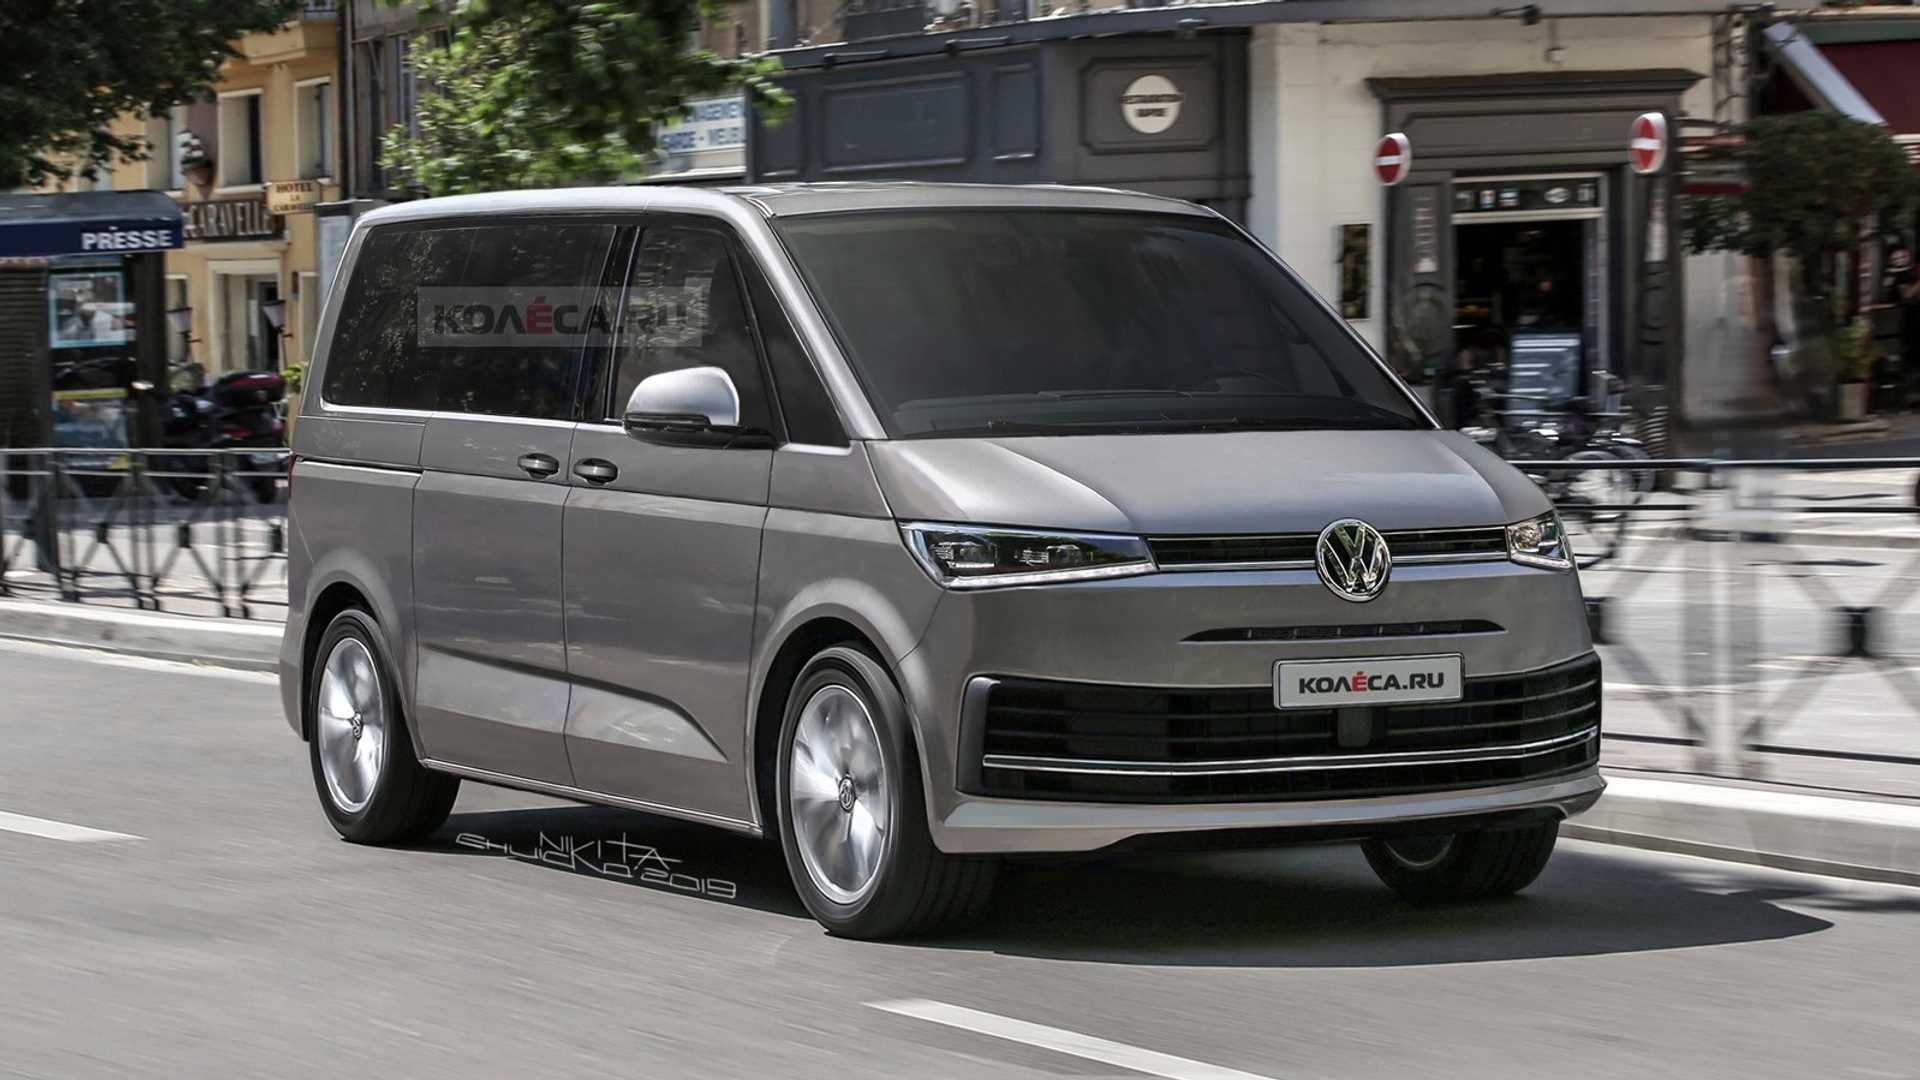 VW T7 Rendering Imagines The People Mover Based On New Spy Shots